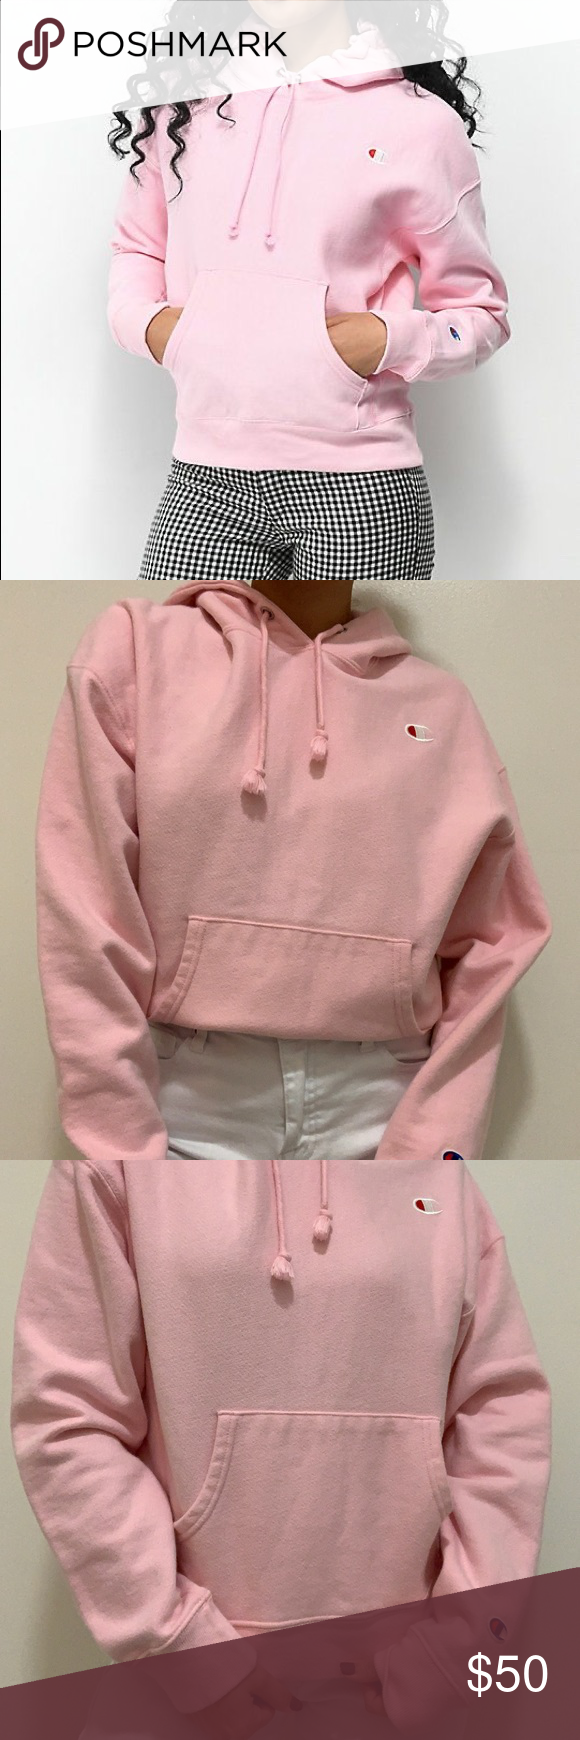 Candy Pink CHAMPION Hoodie Champion Reverse Weave Hoodie - Color: Candy Pink (like a light pink!) - Size: Medium - In perfect condition, literally only wore it once Champion Sweaters #championhoodie